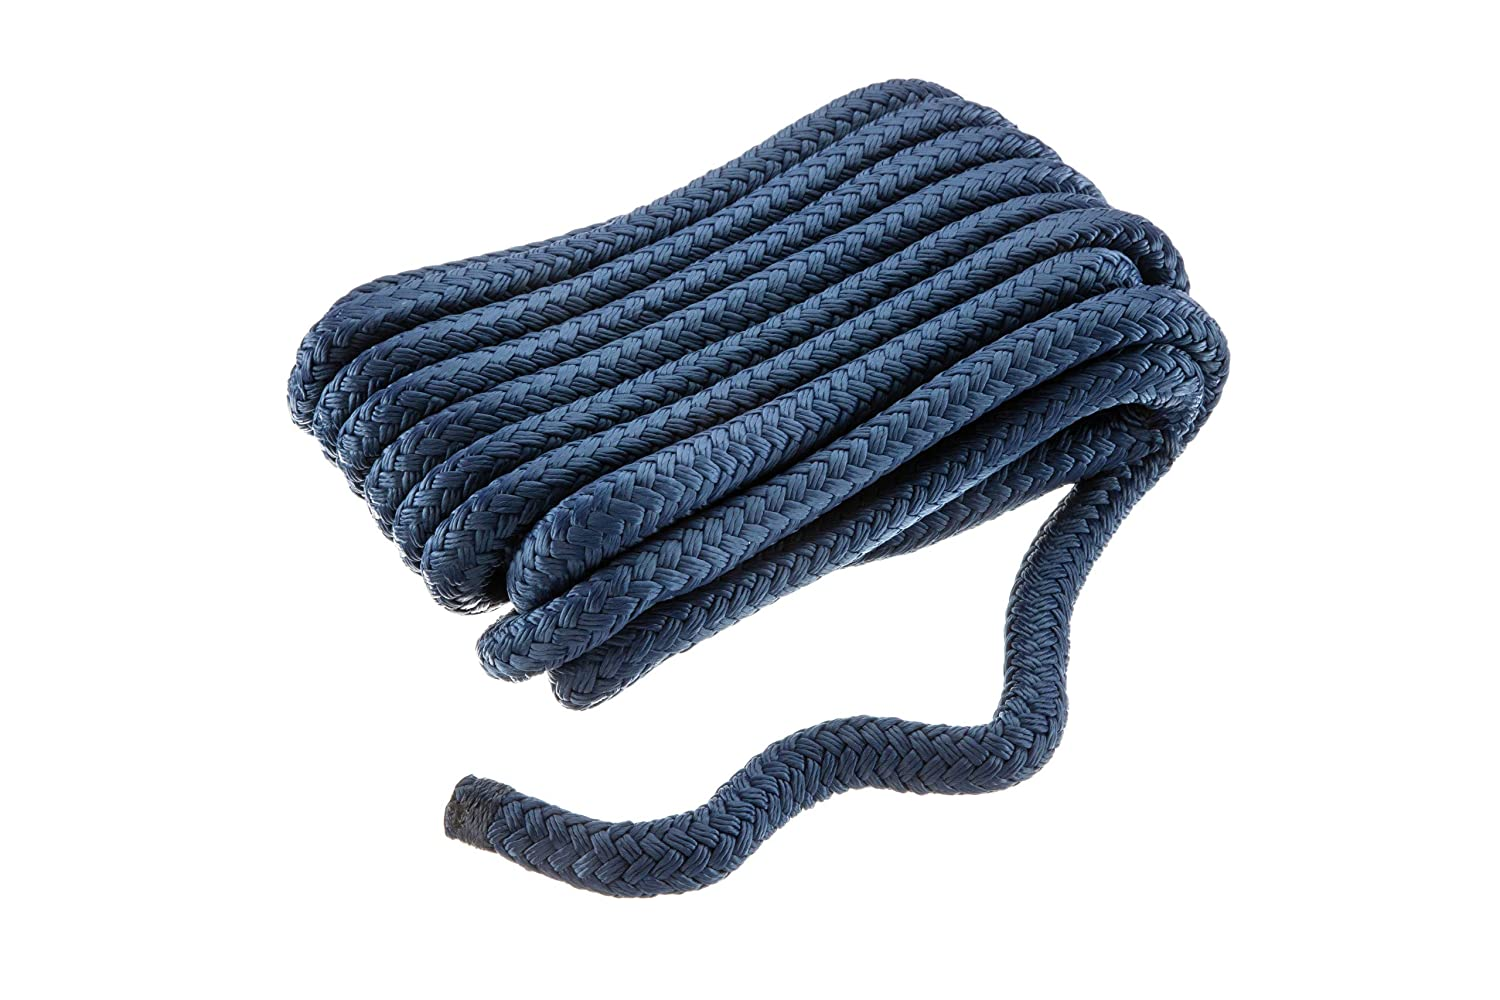 Pre-Shrunk Various Sizes and Colors Seachoice Double Braid Nylon Dock Line with Eye Splice Heat Stabilized